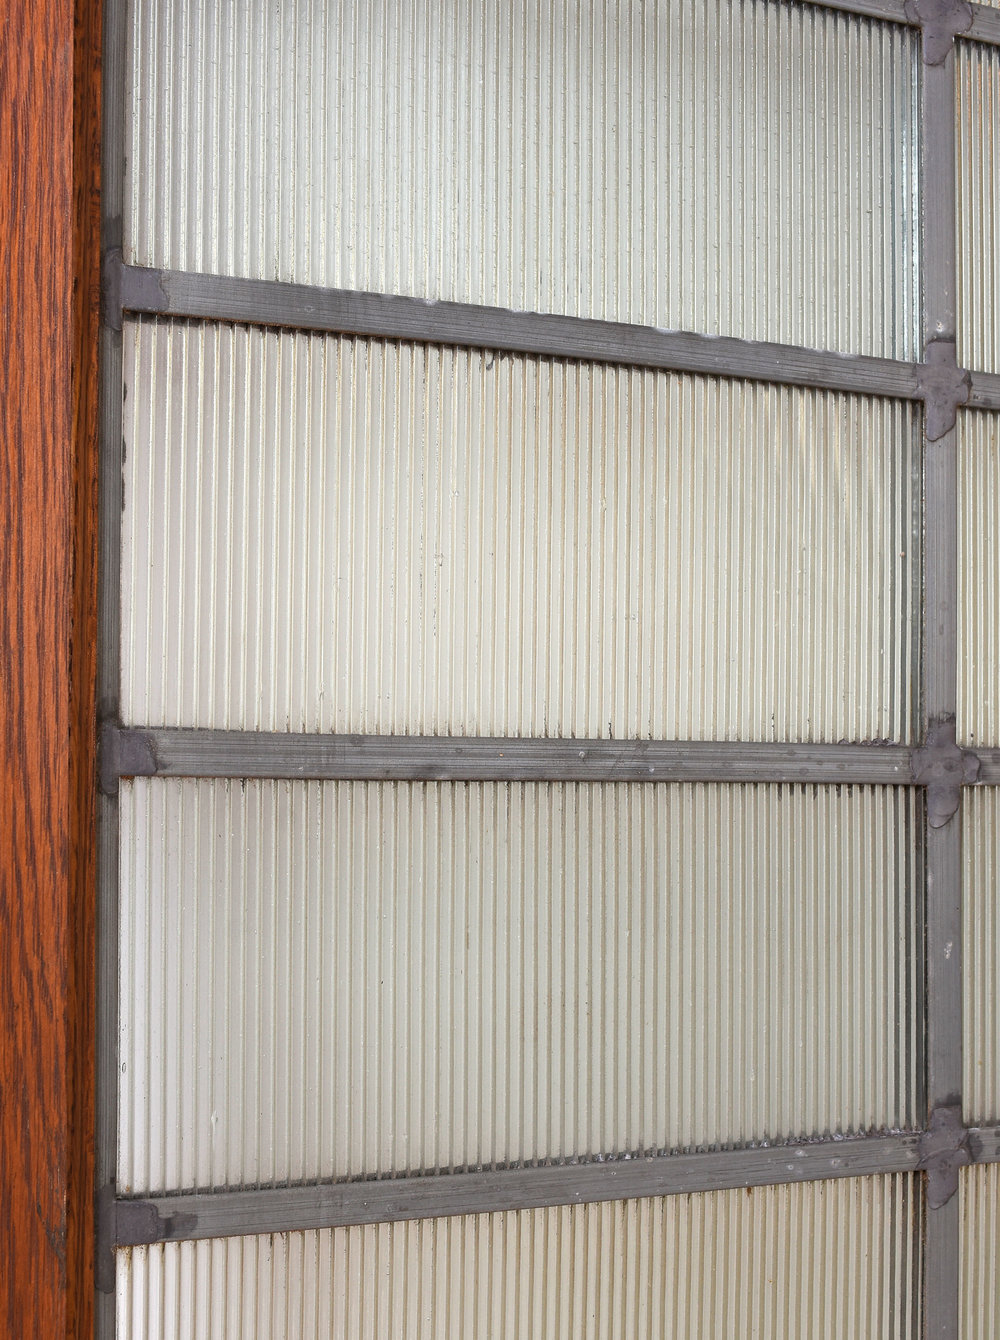 46641-large-warehouse-window-detail.jpg